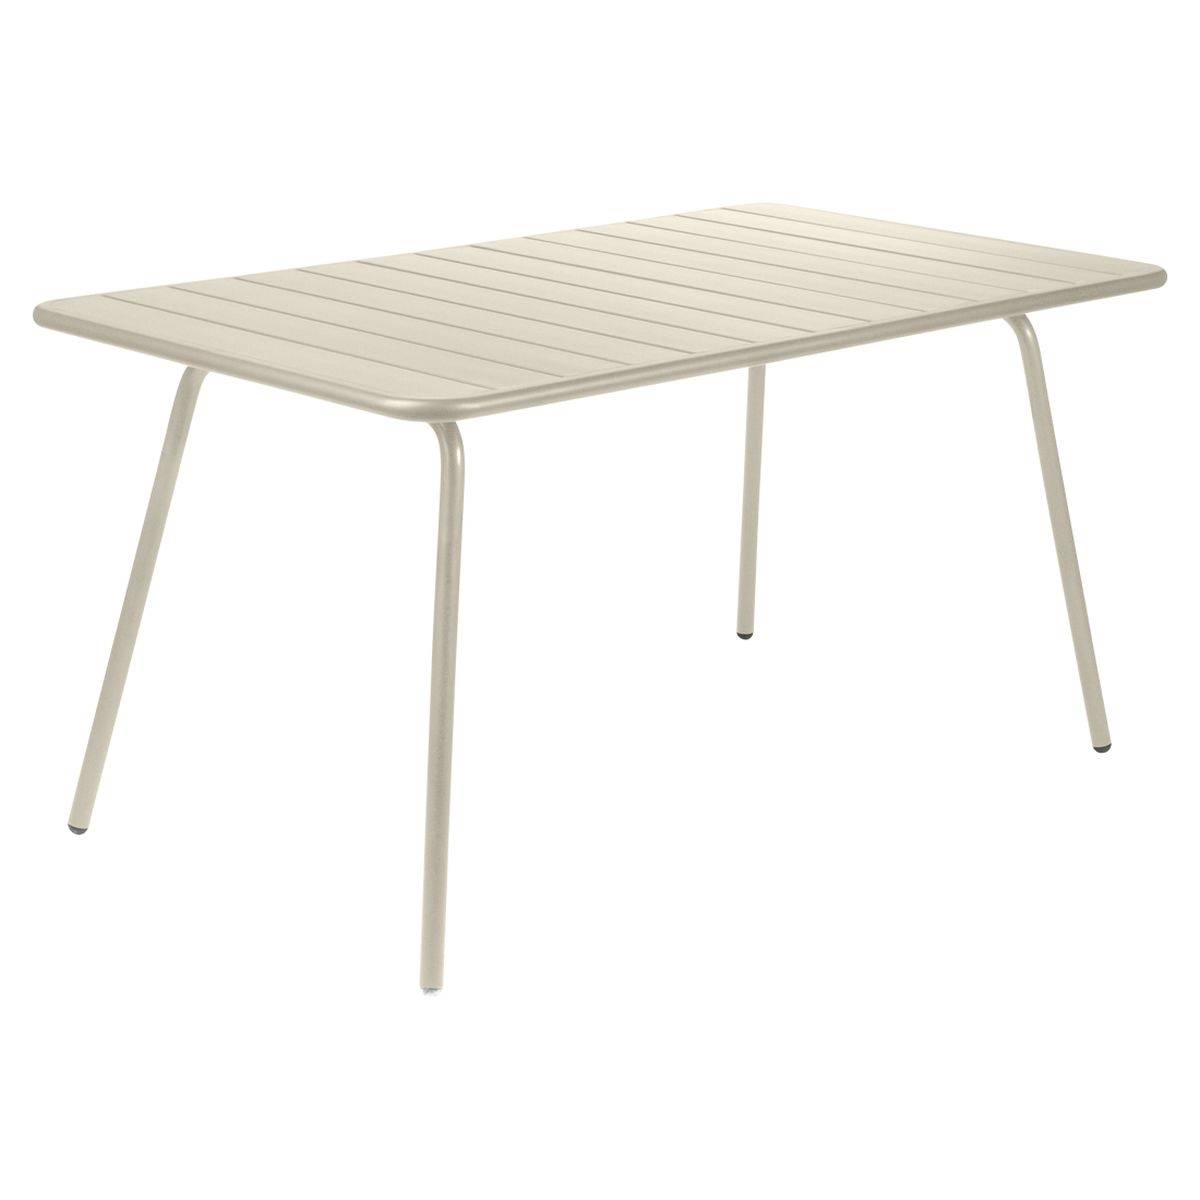 Luxembourg Outdoor Table 143 x 80cm - Clearance Products | Jardin